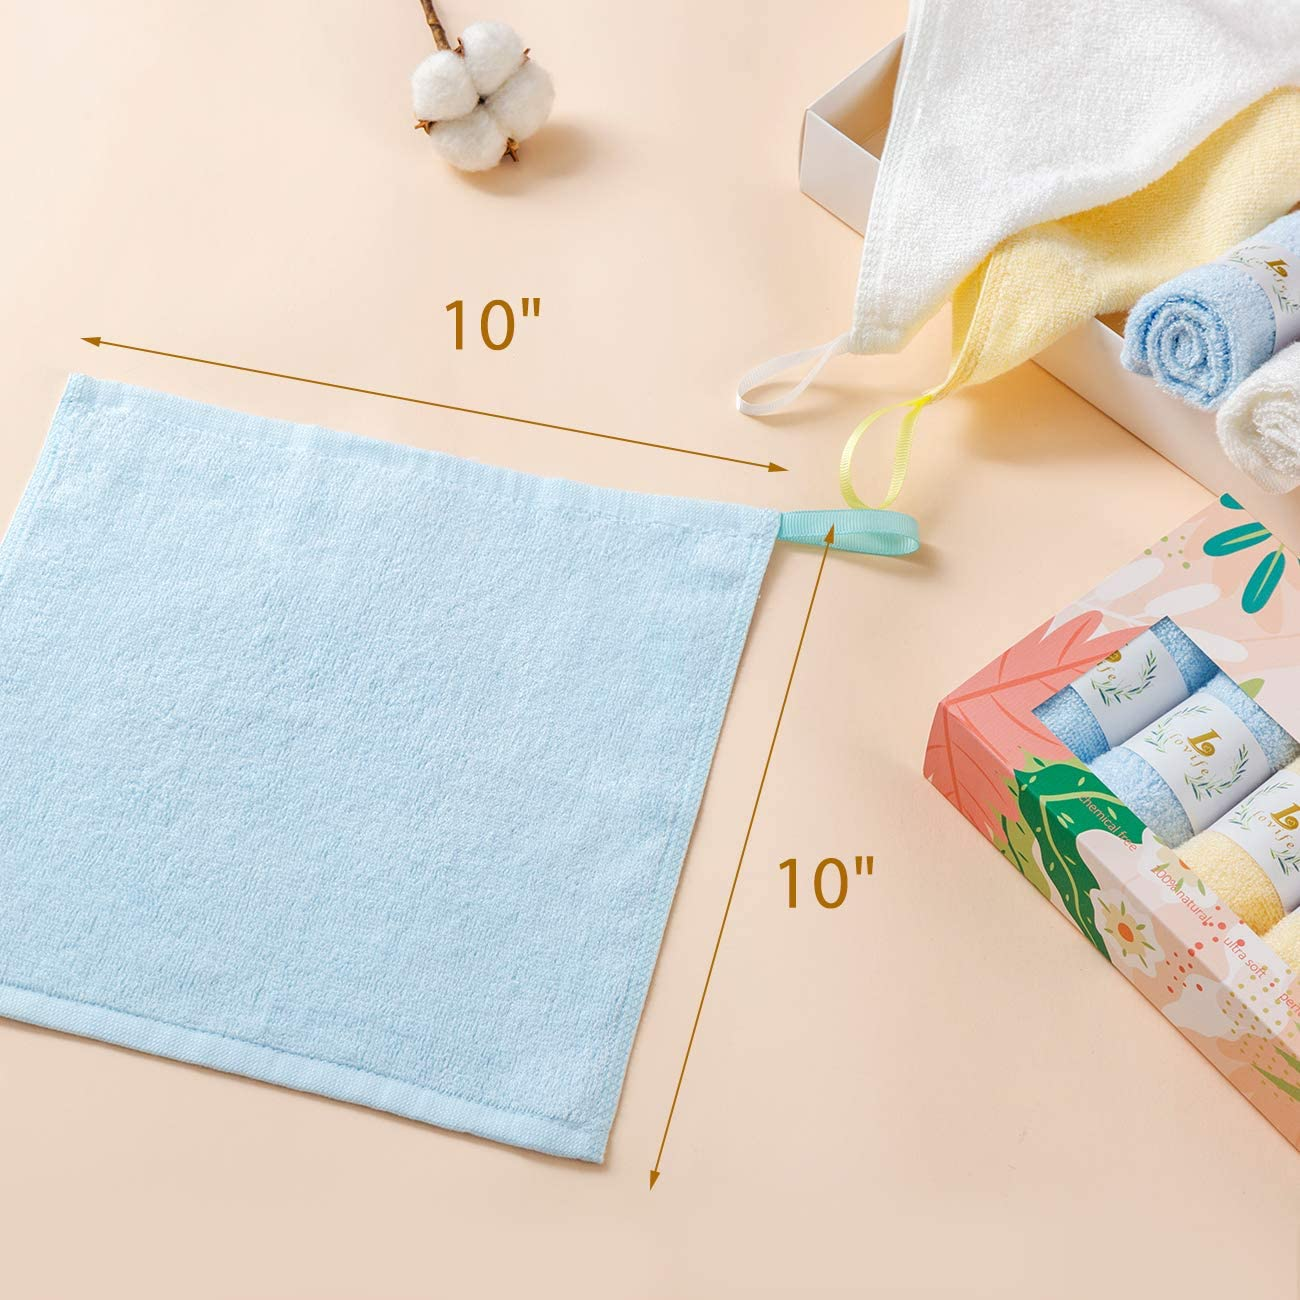 Lovife Bamboo Washclothes for Face Towel Soft Makeup Remover Towels Set Bathroom Gentle on Sensitive Skin 6 Pcs 10 x 10 Inch